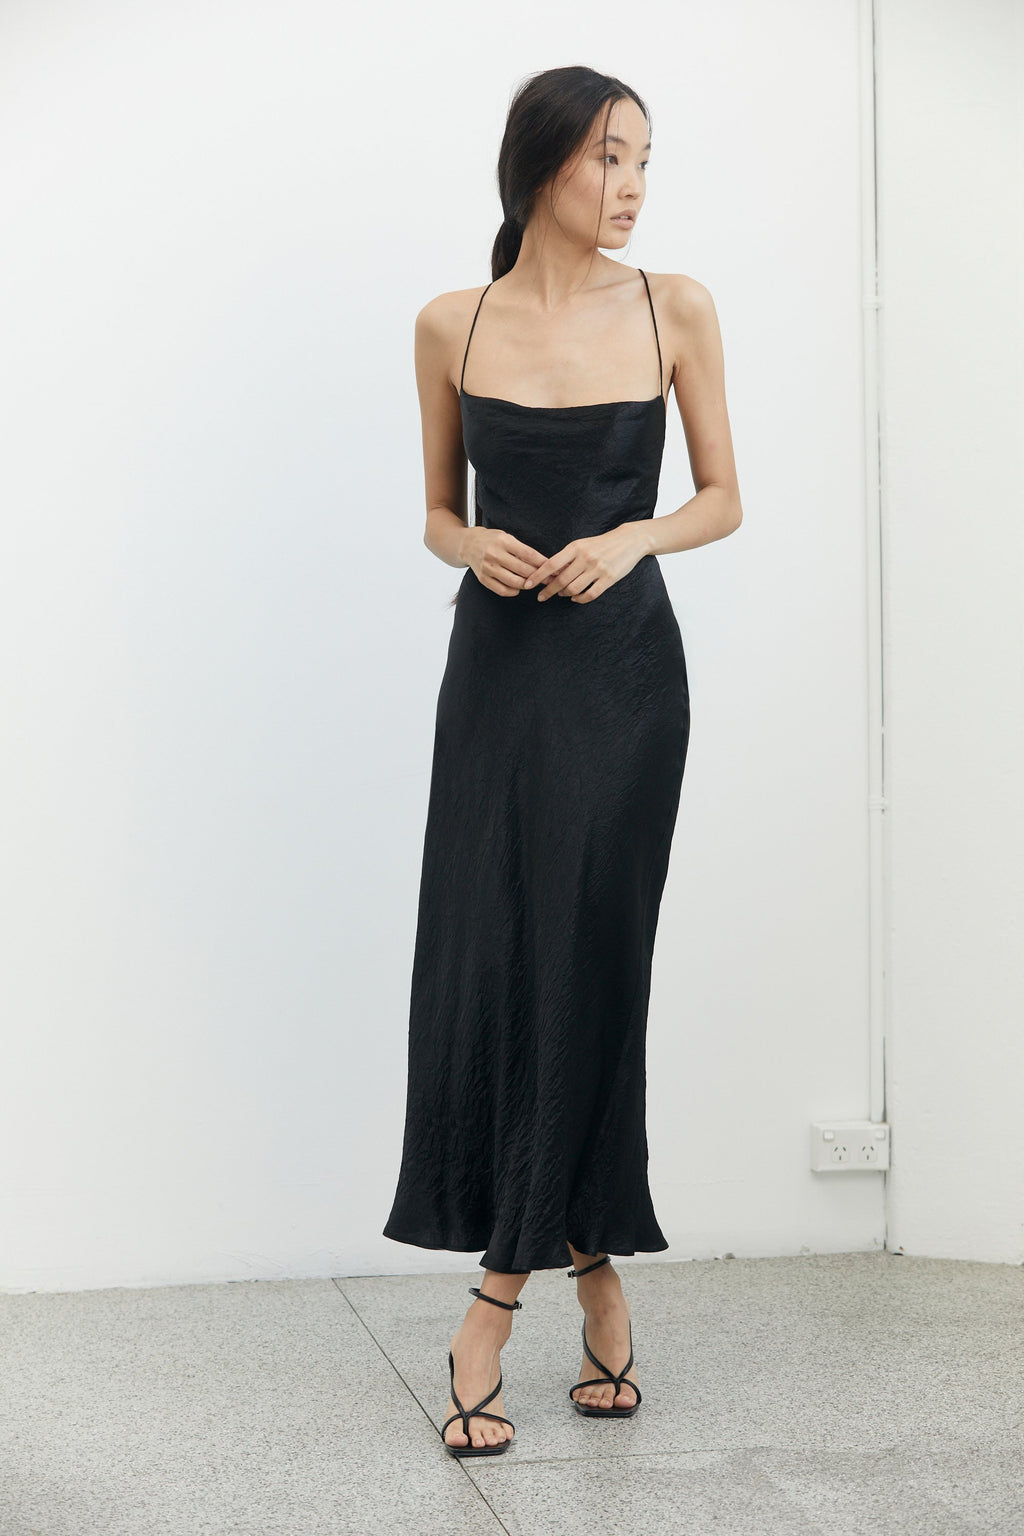 Third Form River Bed Bias Lace Back Slip Dress - Black